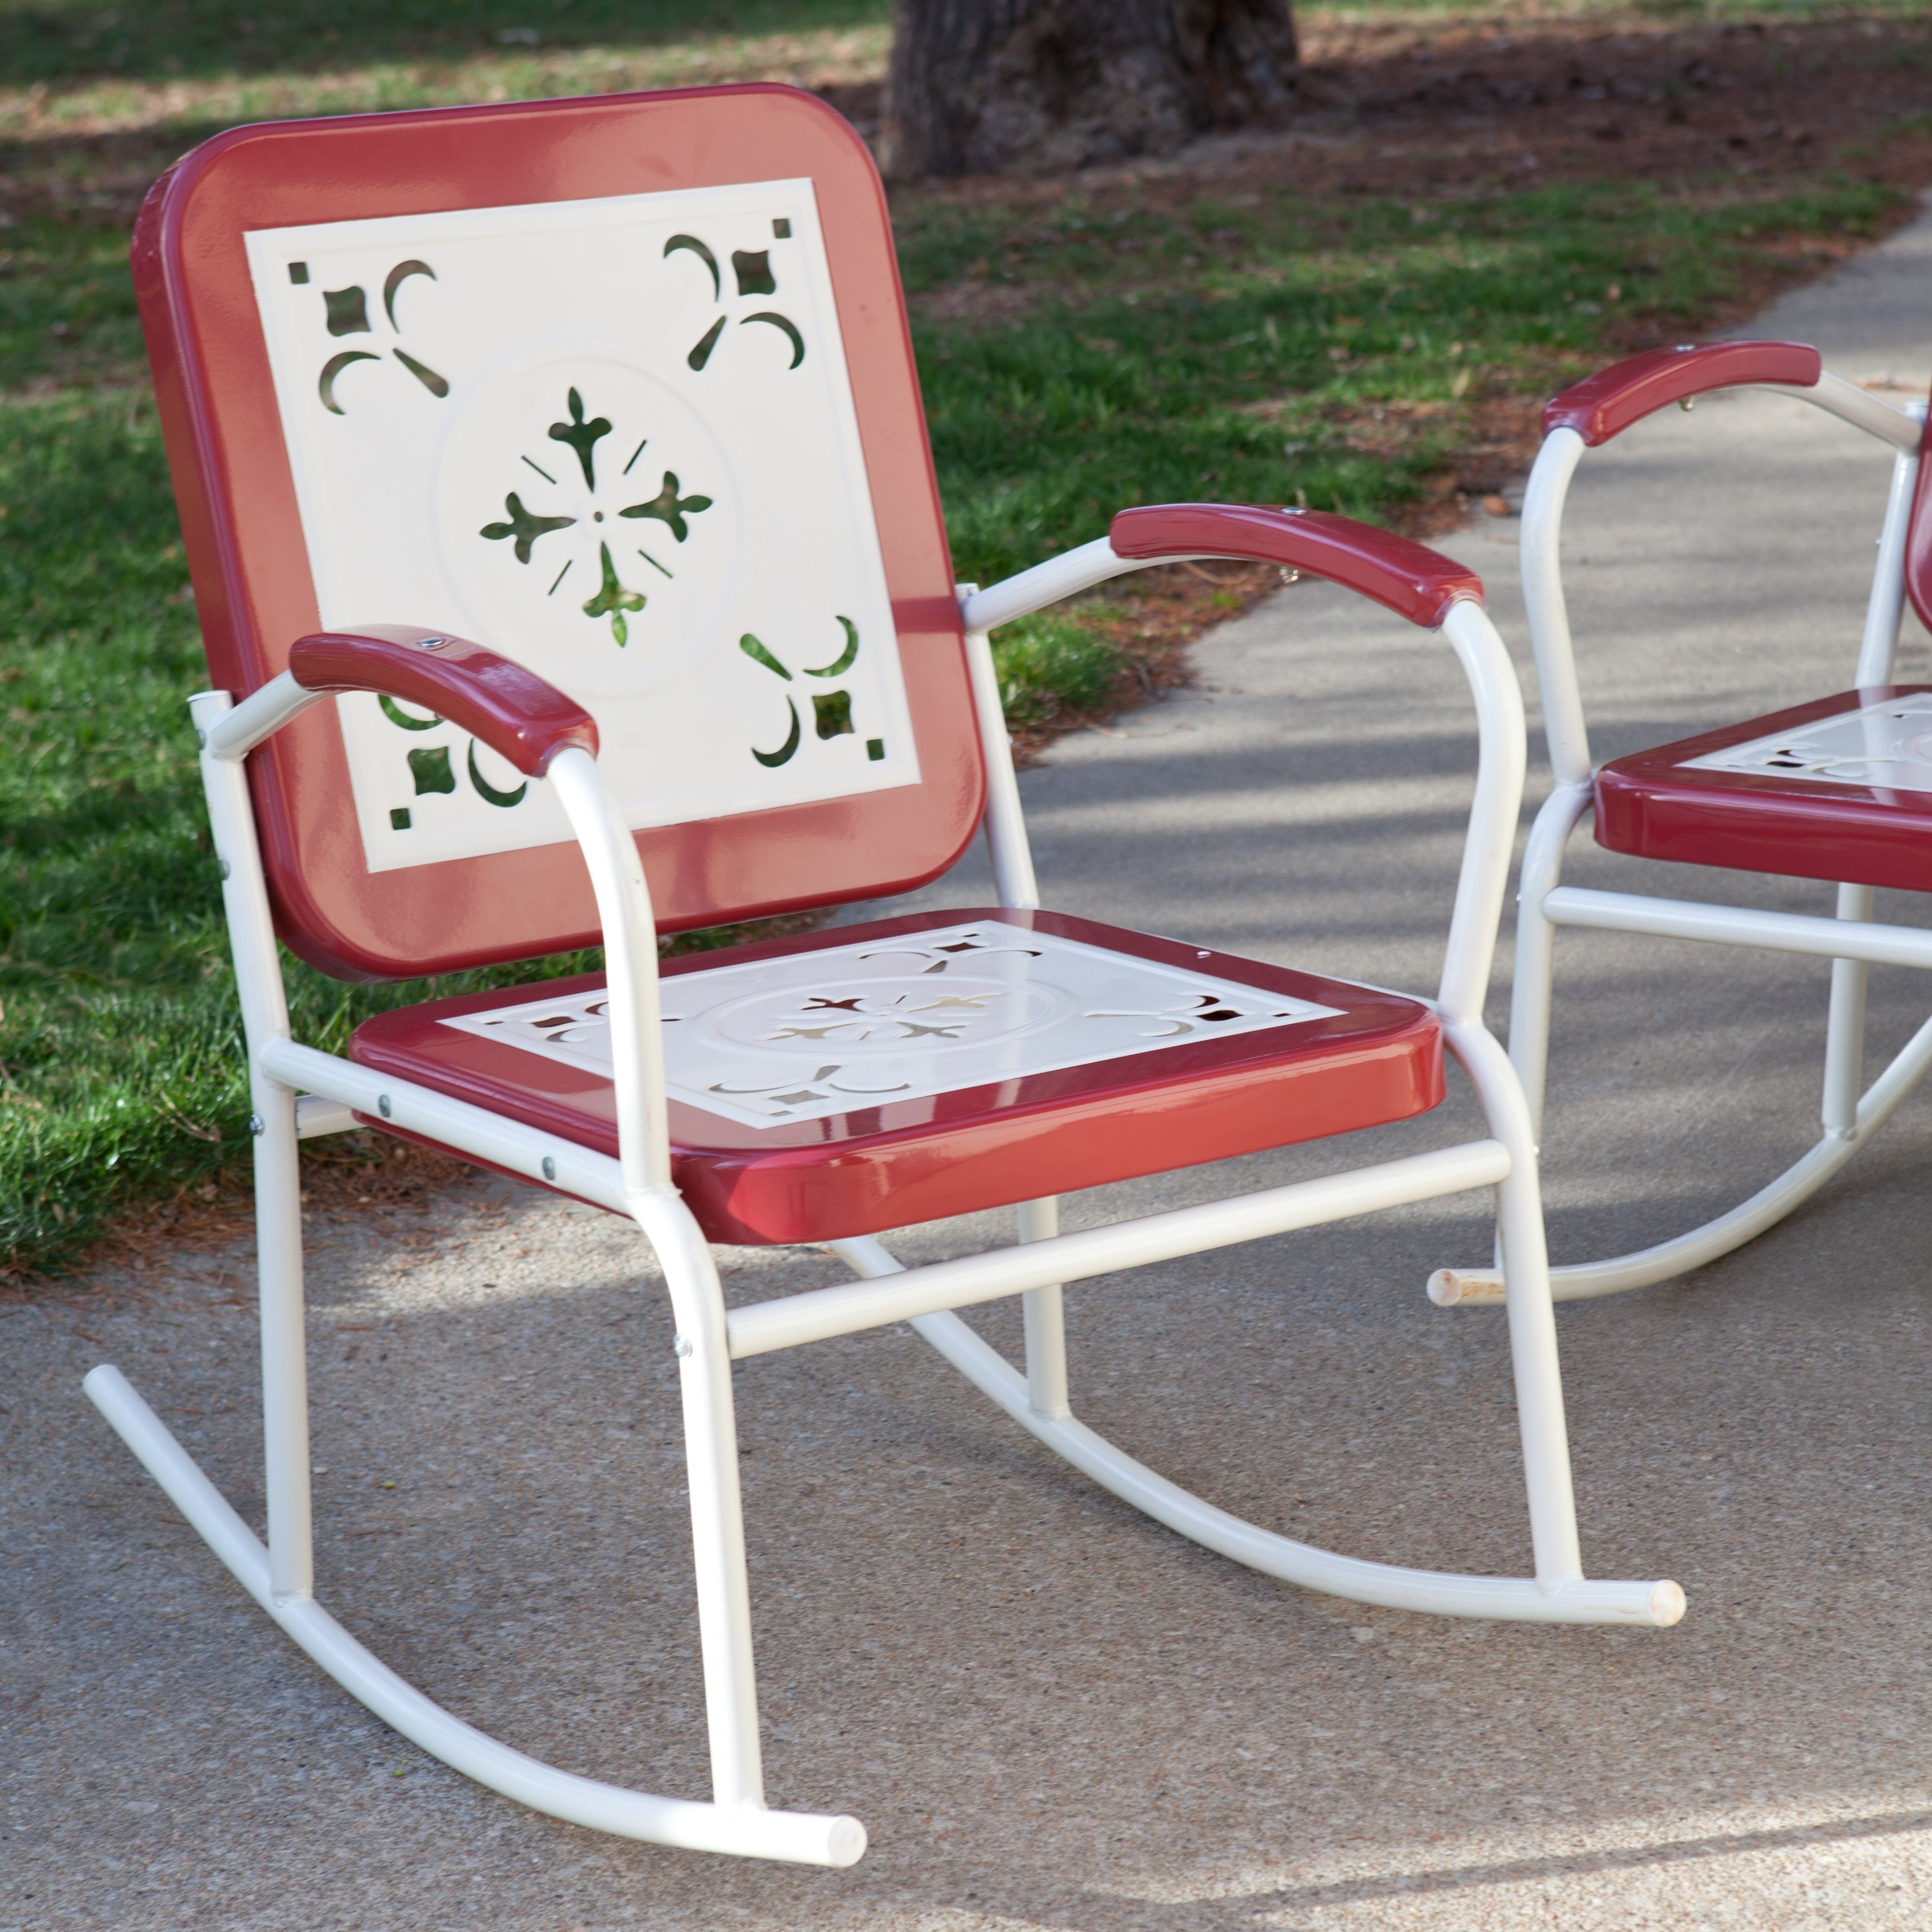 Vintage Outdoor Rocking Chairs Throughout Current Old Metal Outdoor Rocking Chairs – Outdoor Designs (Gallery 1 of 20)